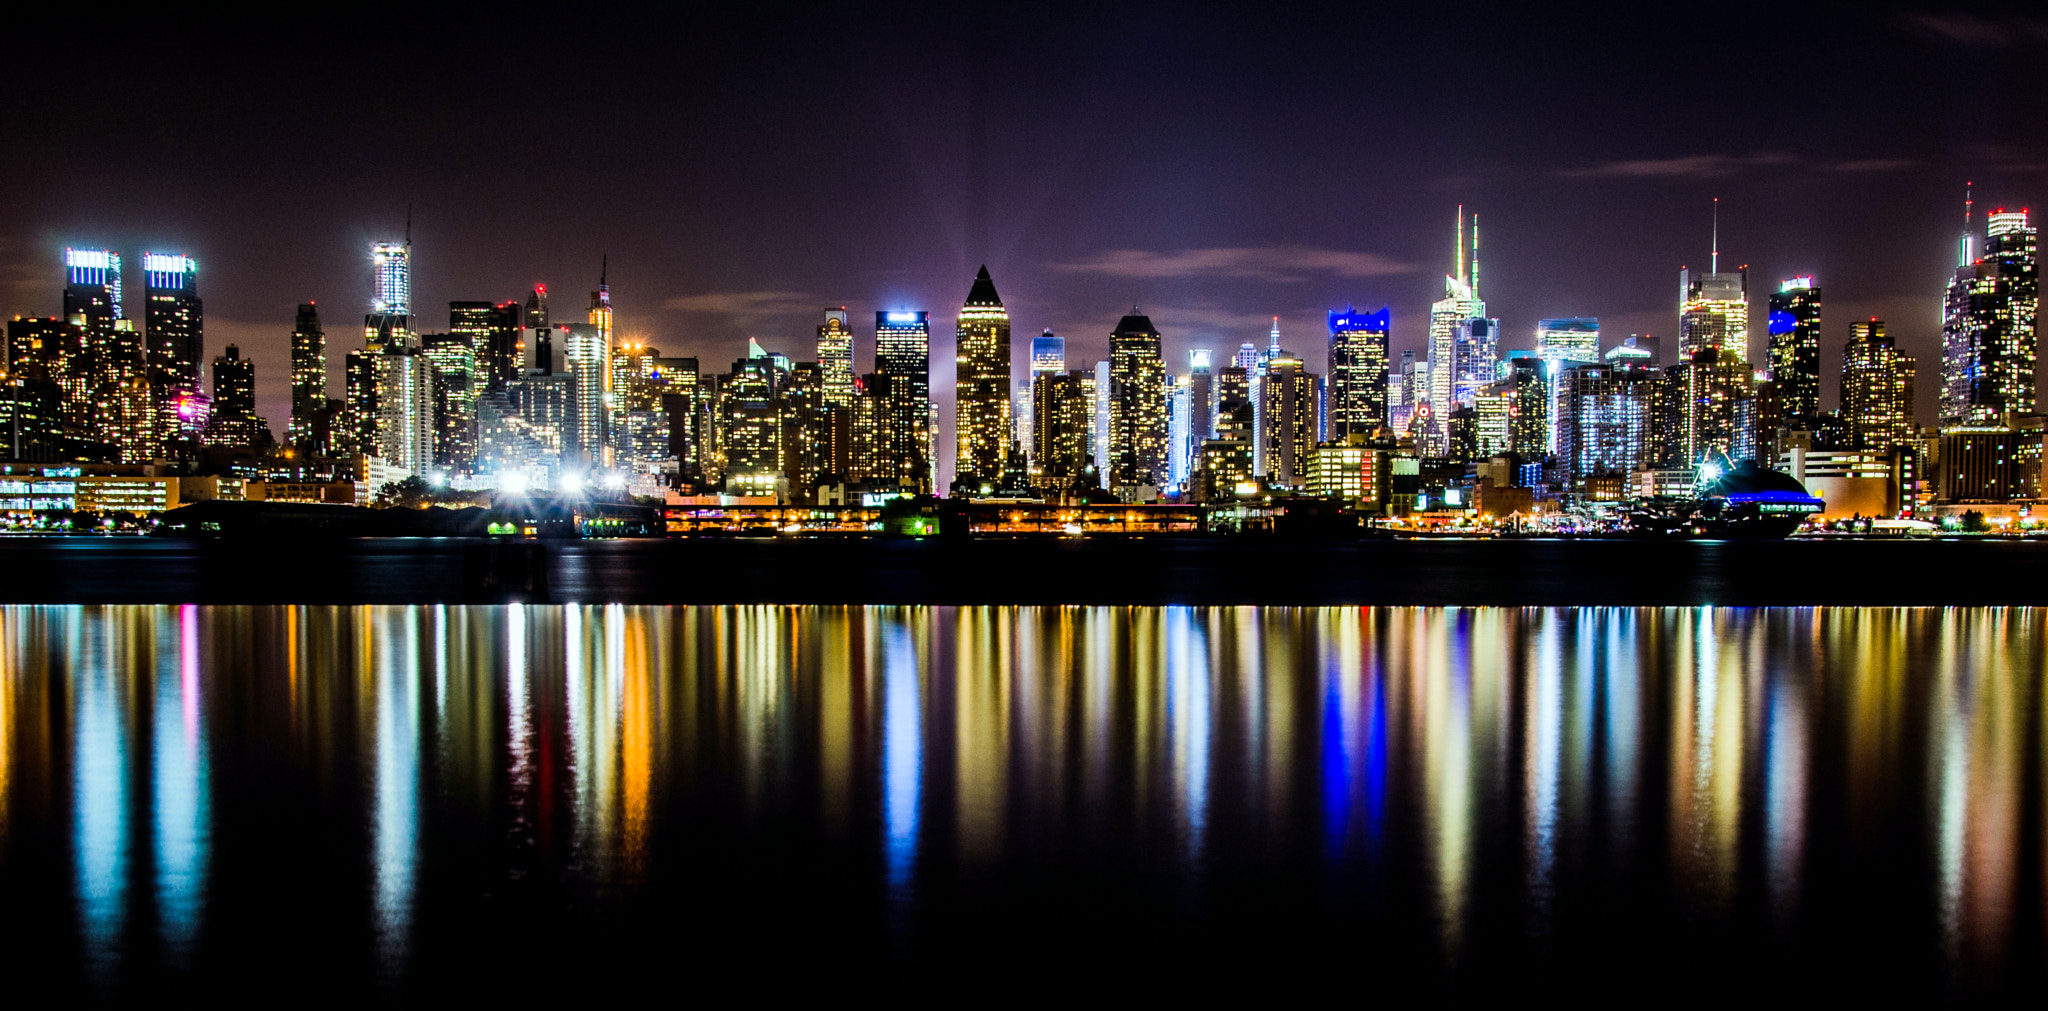 Photograph The Big Apple @ Night ll by Mauricio Fernandez on 500px